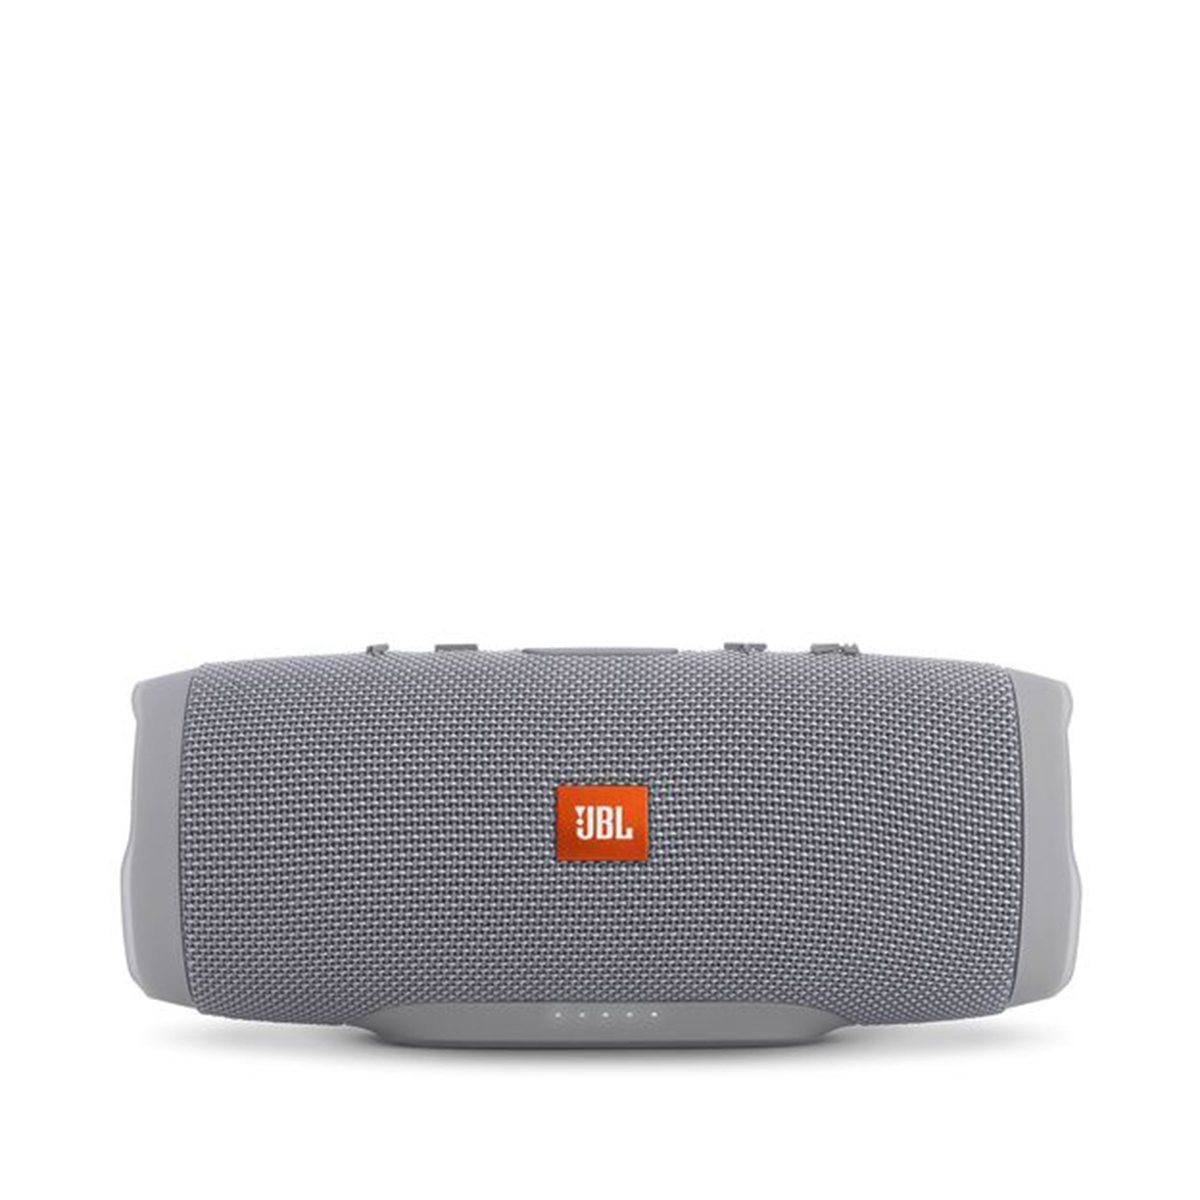 JBL - Charge 3 Portable Bluetooth Speaker - Squad